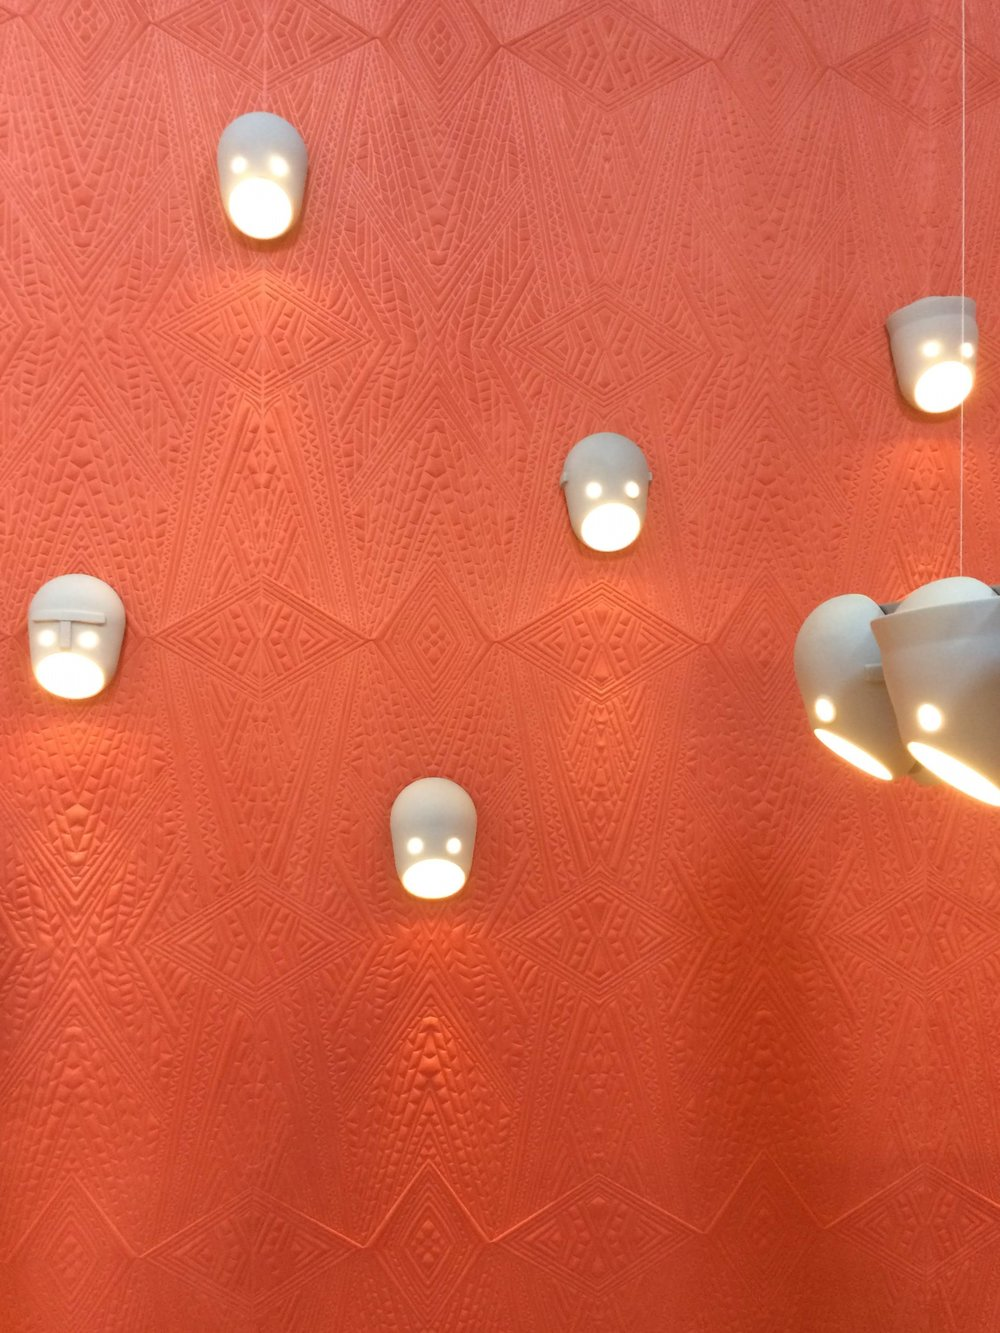 The Party wall lamps by Kranen/Gille. MOOI